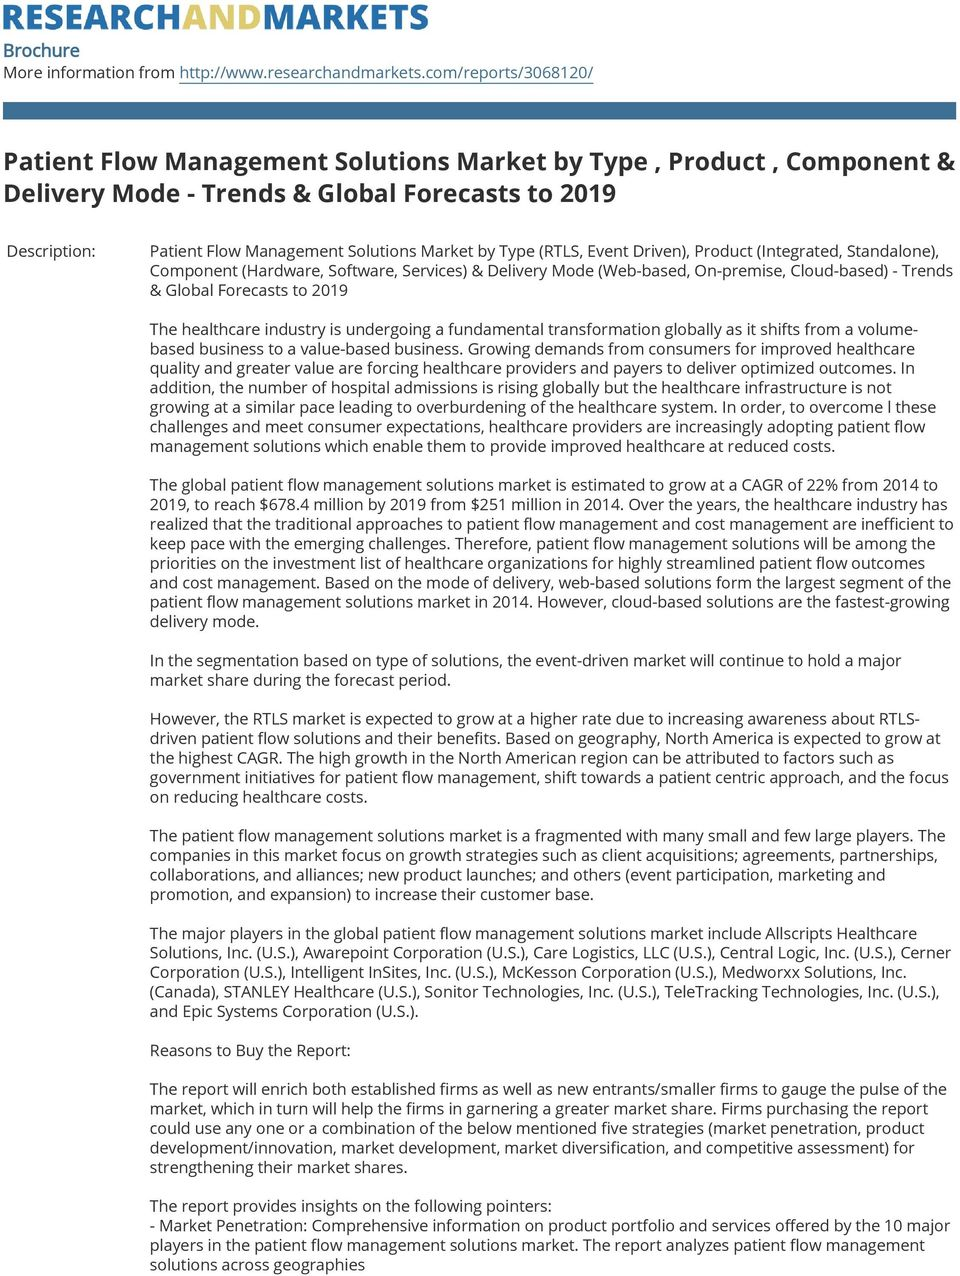 Type (RTLS, Event Driven), Product (Integrated, Standalone), Component (Hardware, Software, Services) & Delivery Mode (Web-based, On-premise, Cloud-based) - Trends & Global Forecasts to 2019 The